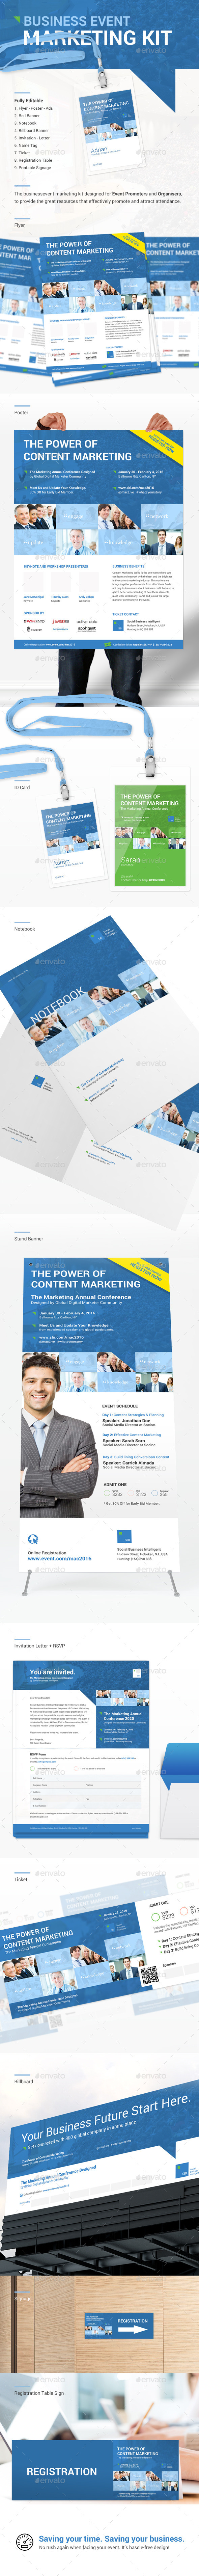 Clean Business Event Marketing Kit - Stationery Print Templates